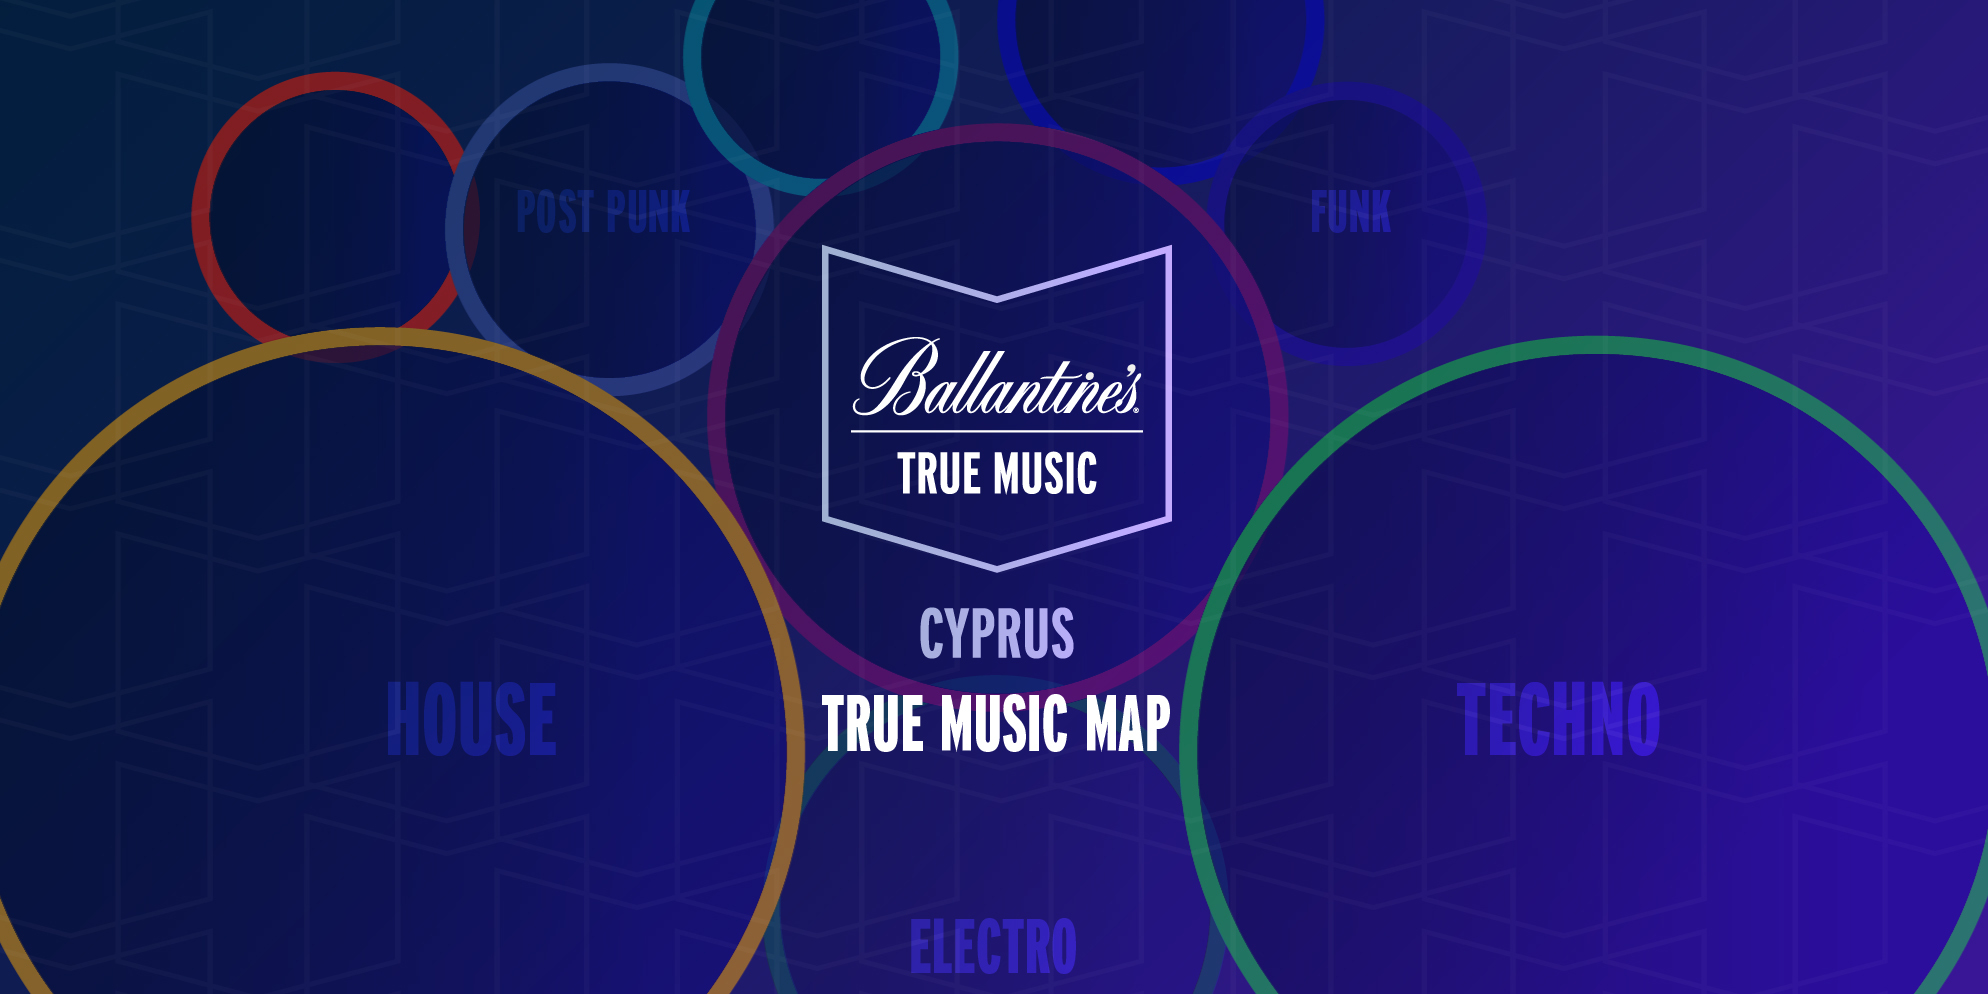 Ballantine's True Music Cyprus